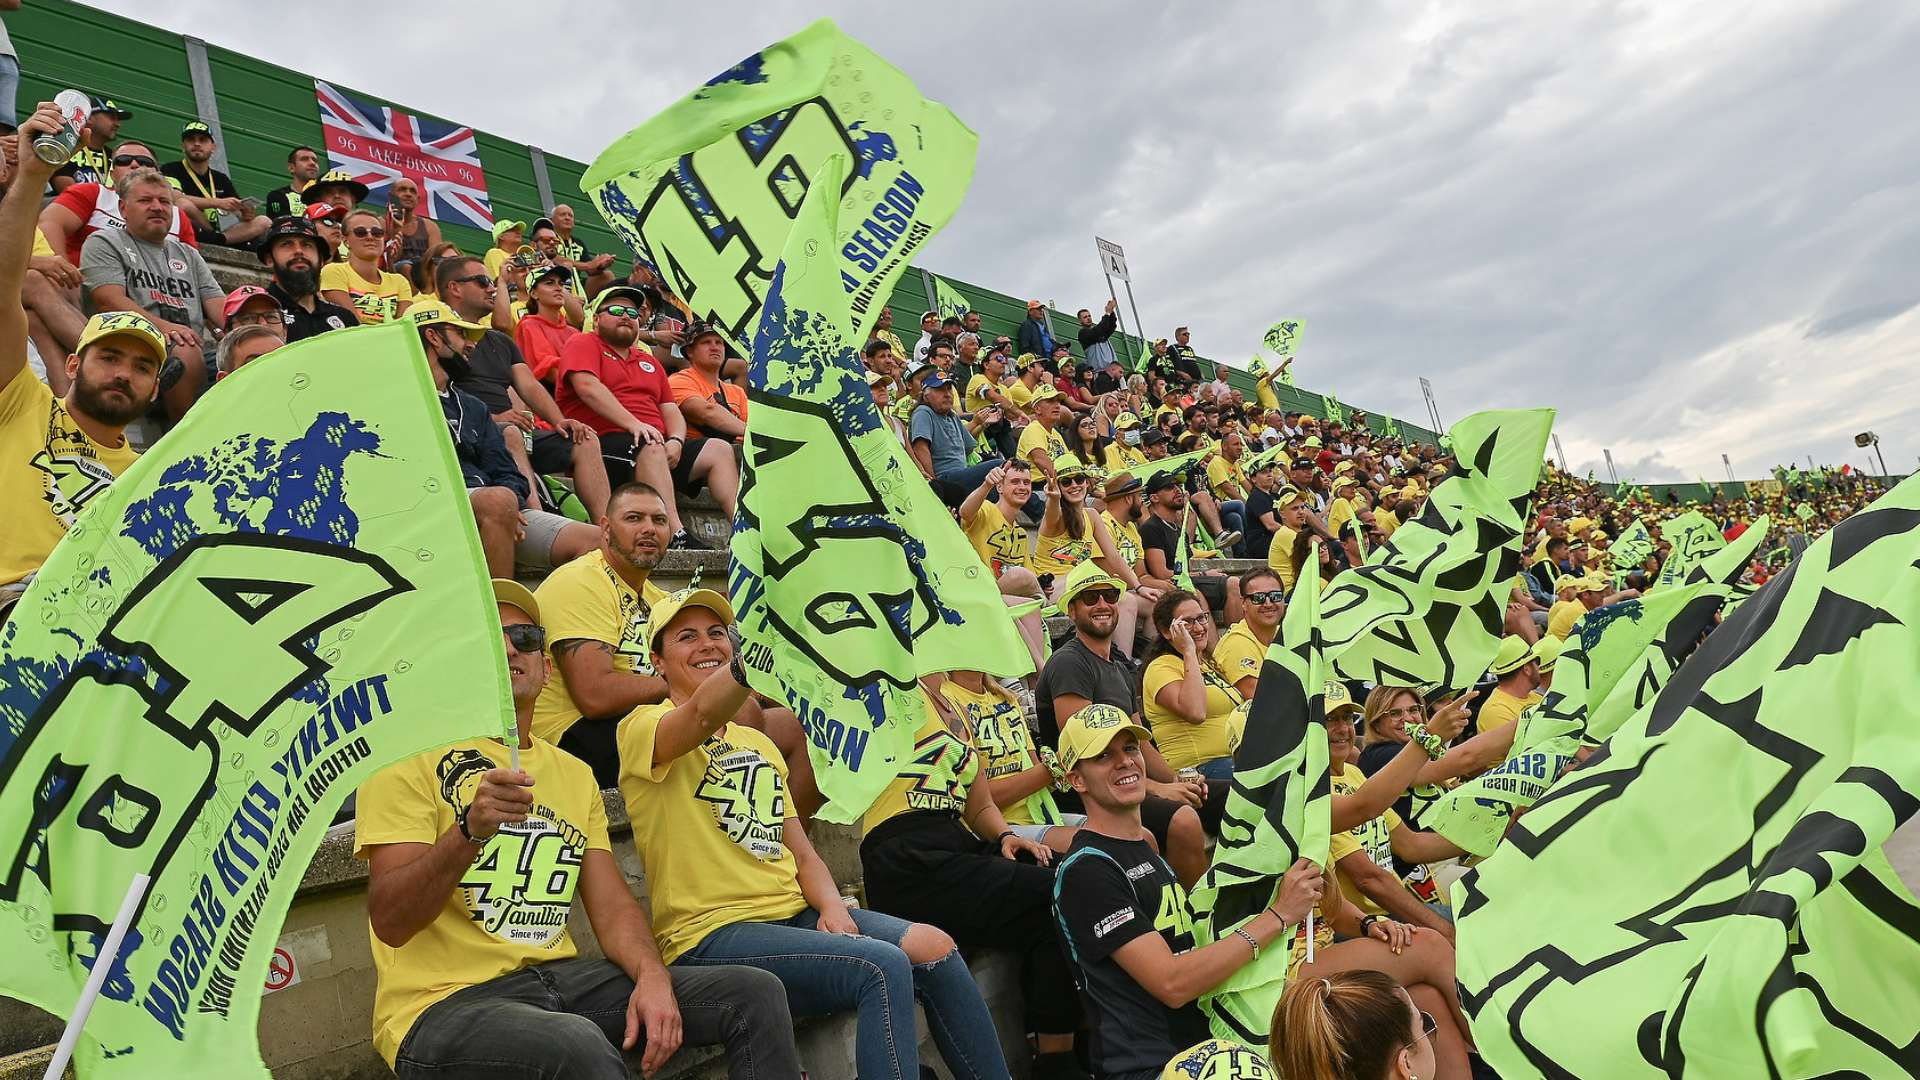 MotoGP, Misano World Circuit: the big party for Rossi is approaching. Tickets still available.